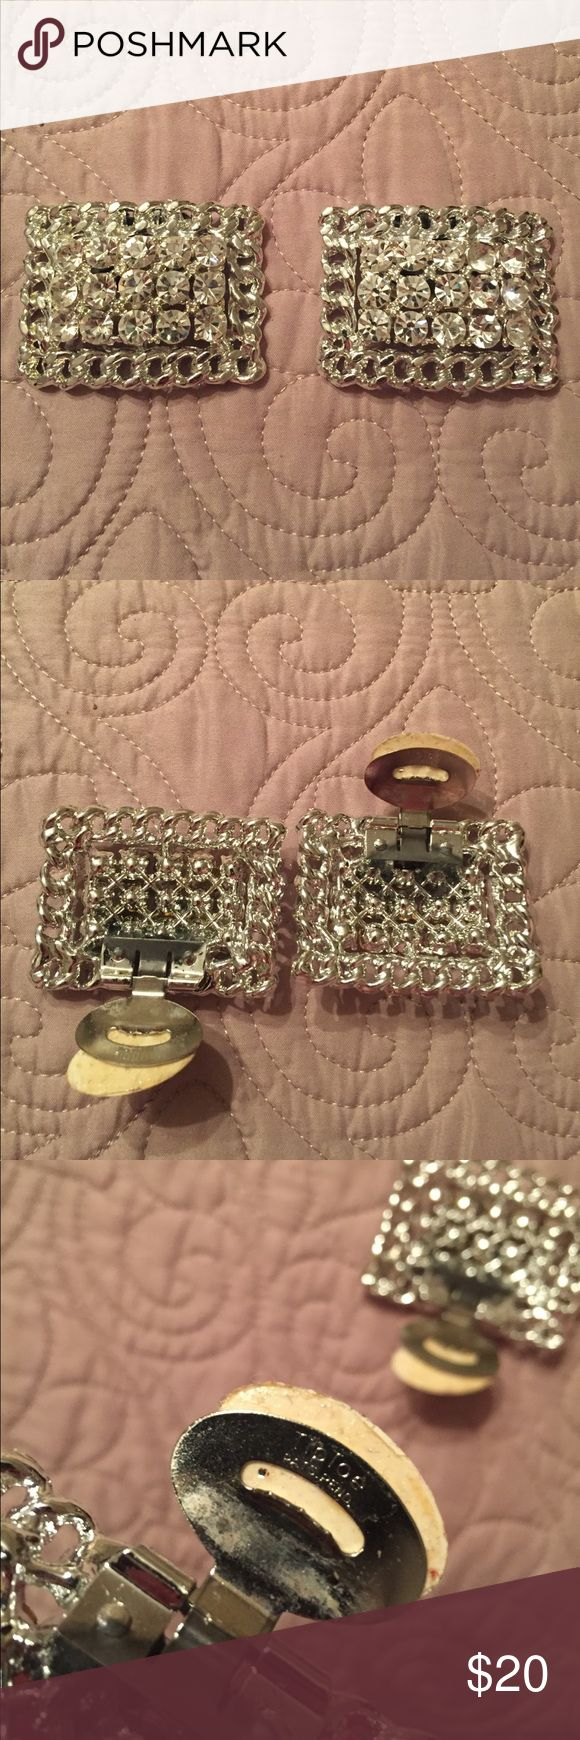 Vintage Tip Toe shoe clips Tip Toe shoe clips Tip Toe  Jewelry